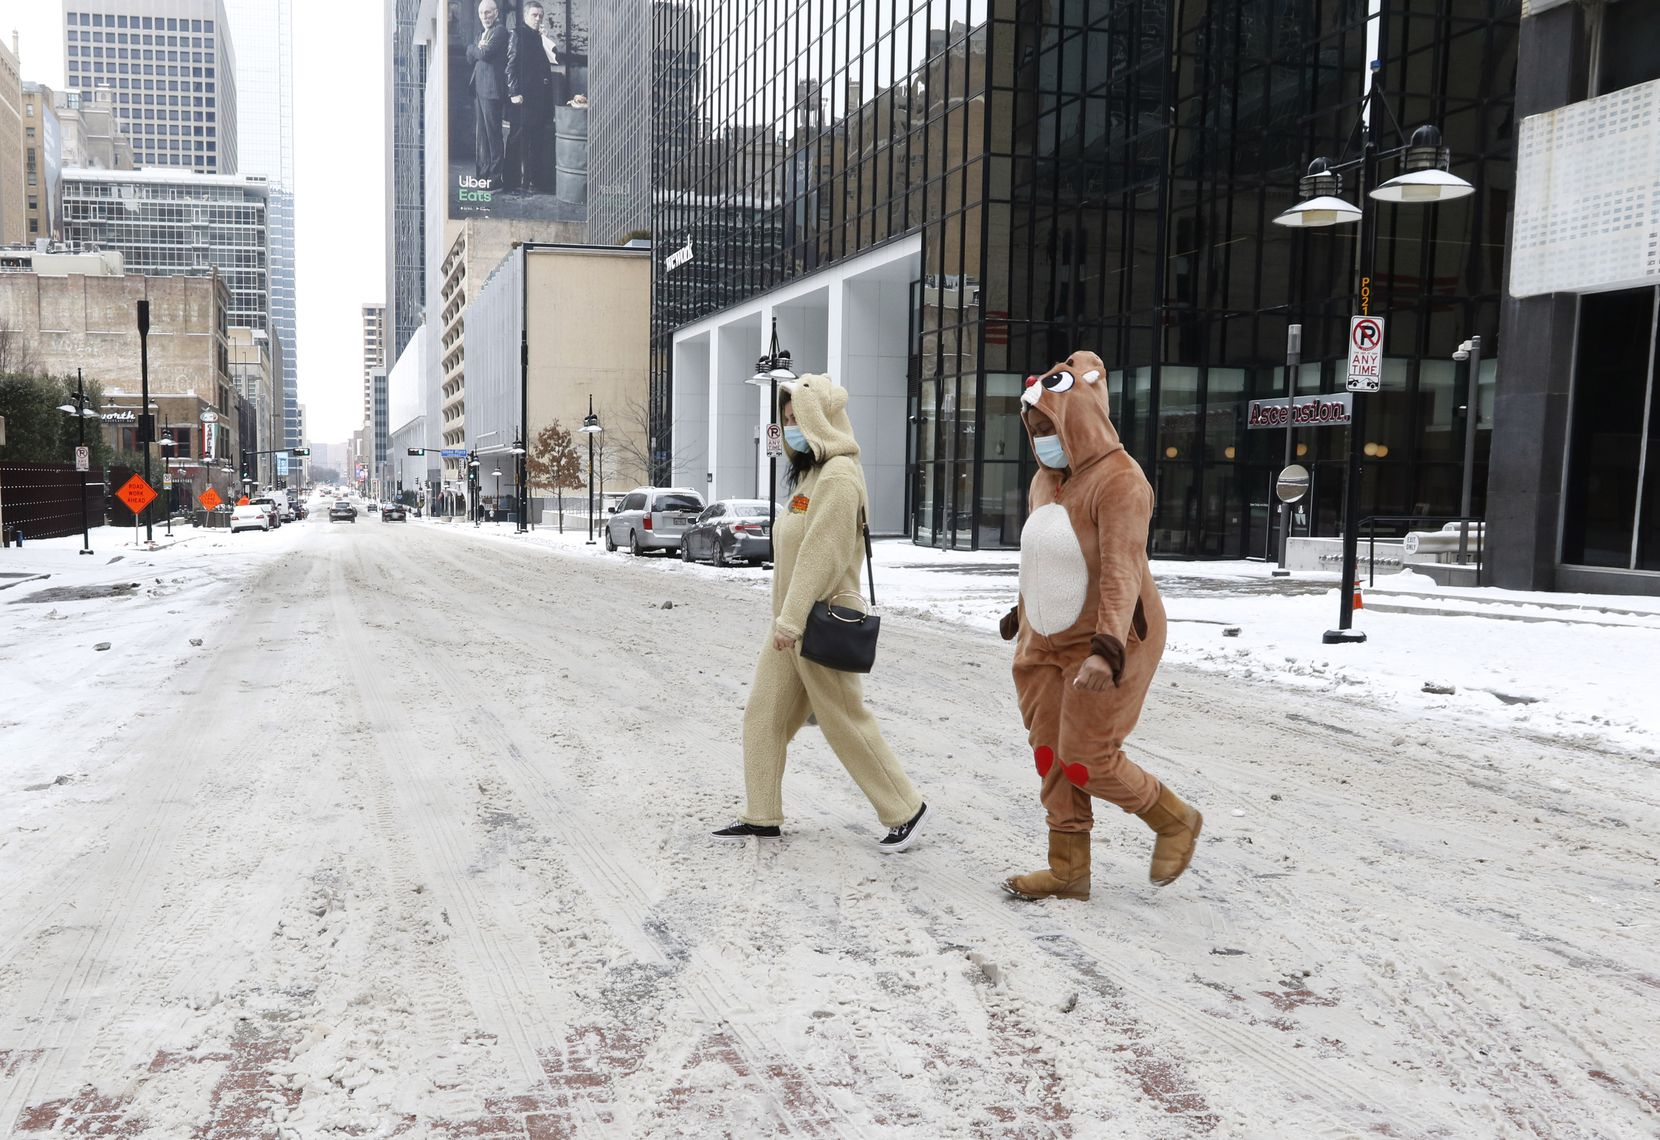 Leighanne Katz, left, dressed in a Thunder Buddies costume and Billian Lawal, right, in a Rudolph The Red-Nosed Reindeer costume walk from a 7-Eleven convenience store at the intersection of Elm St and Ervay St on Wednesday, February 17, 2021, in downtown Dallas.